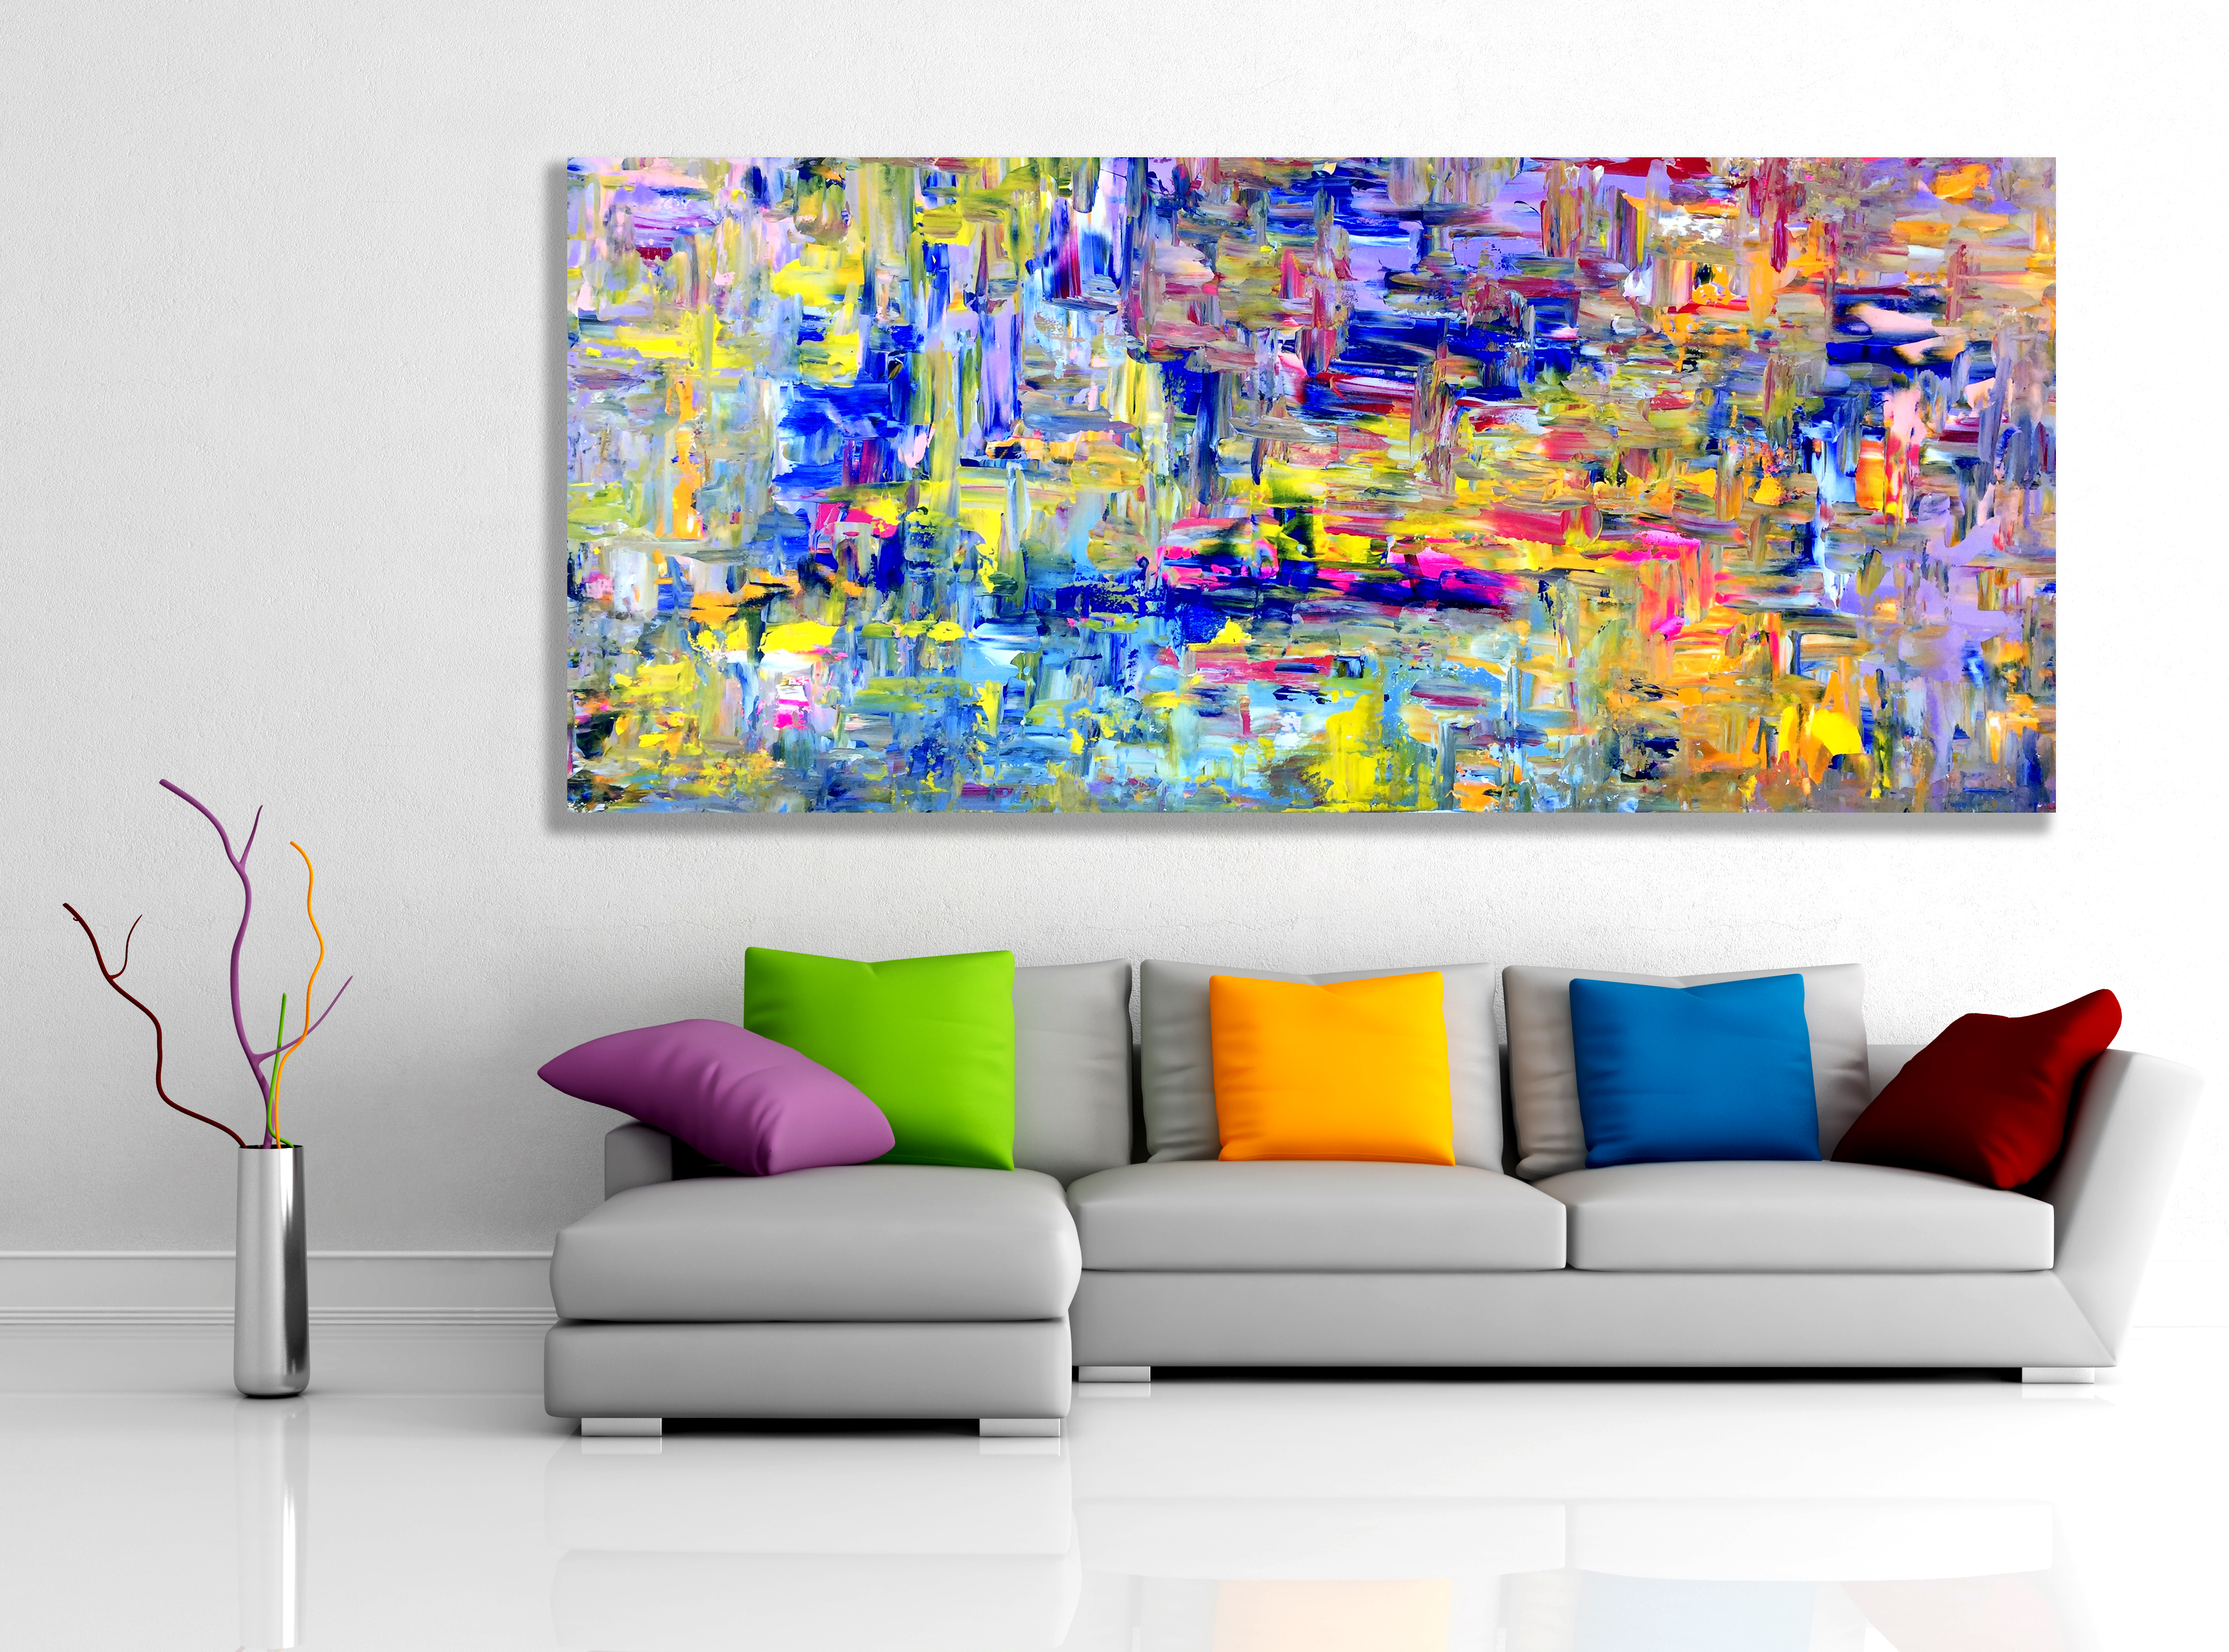 Future Dreaming - Abstract Expressionism by Estelle Asmodelle